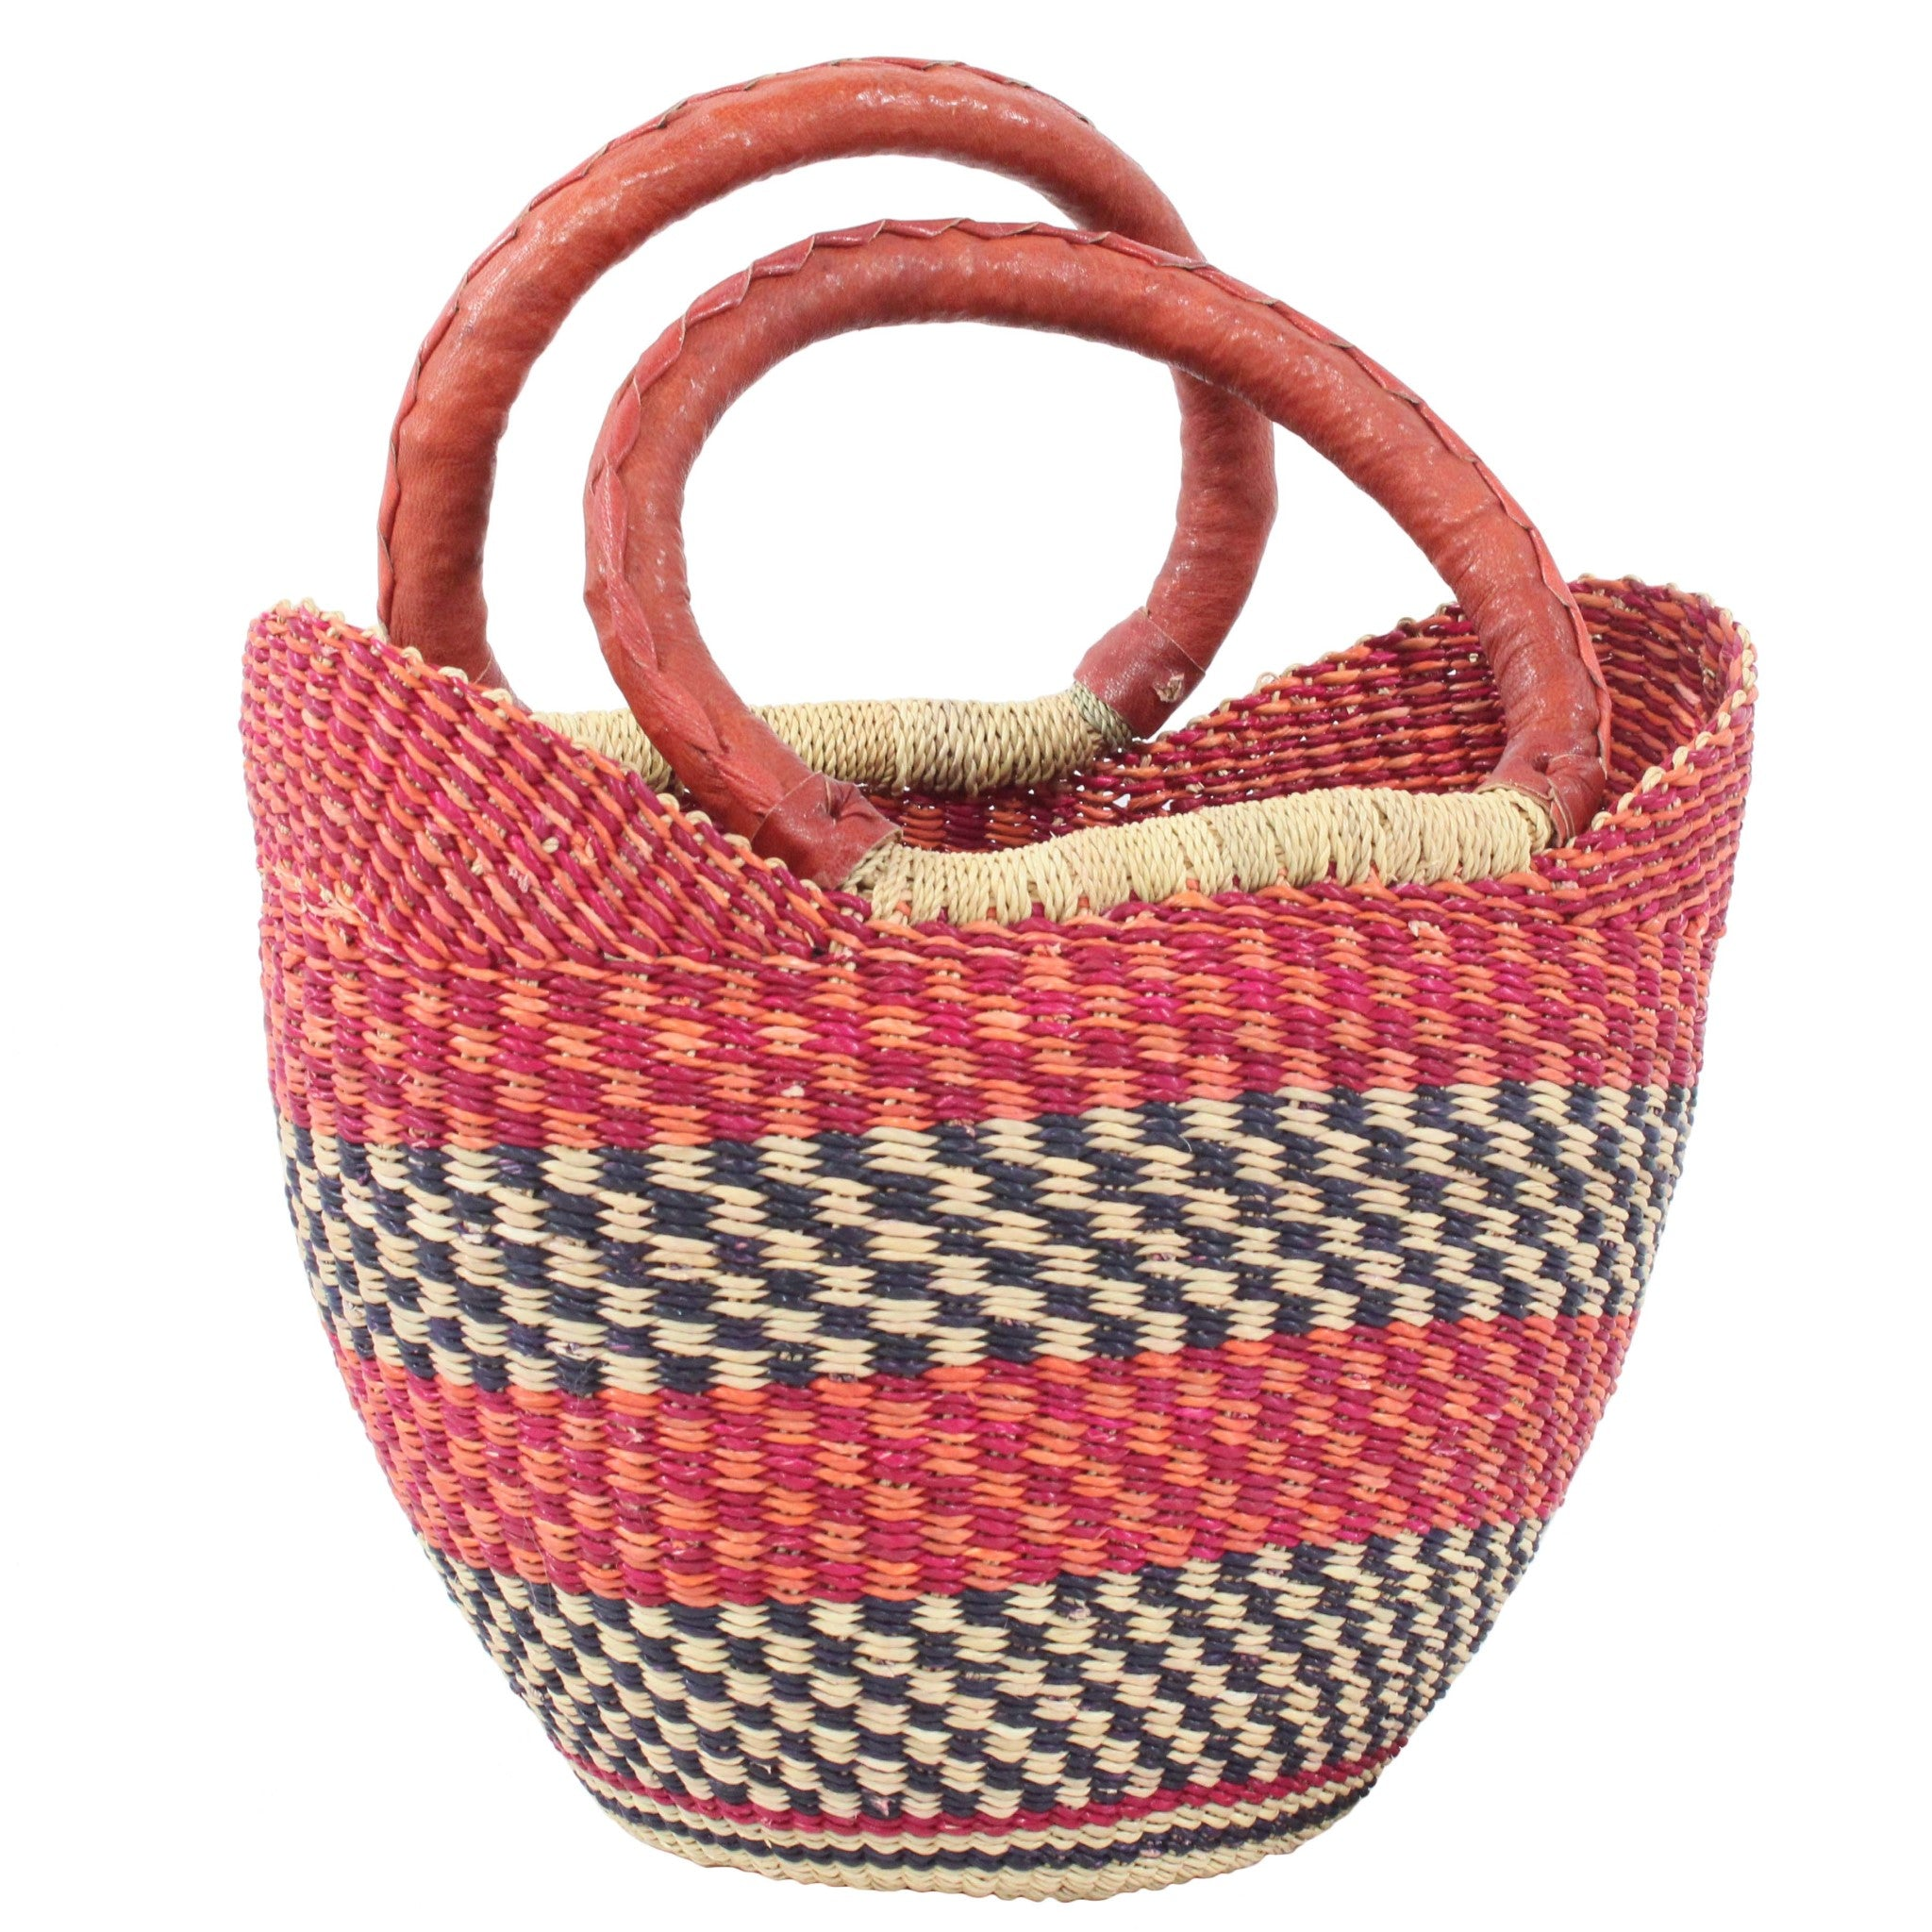 Cherry Mini U-Shopper, Handwoven African Kids Play Baskets by Tobs and Ror